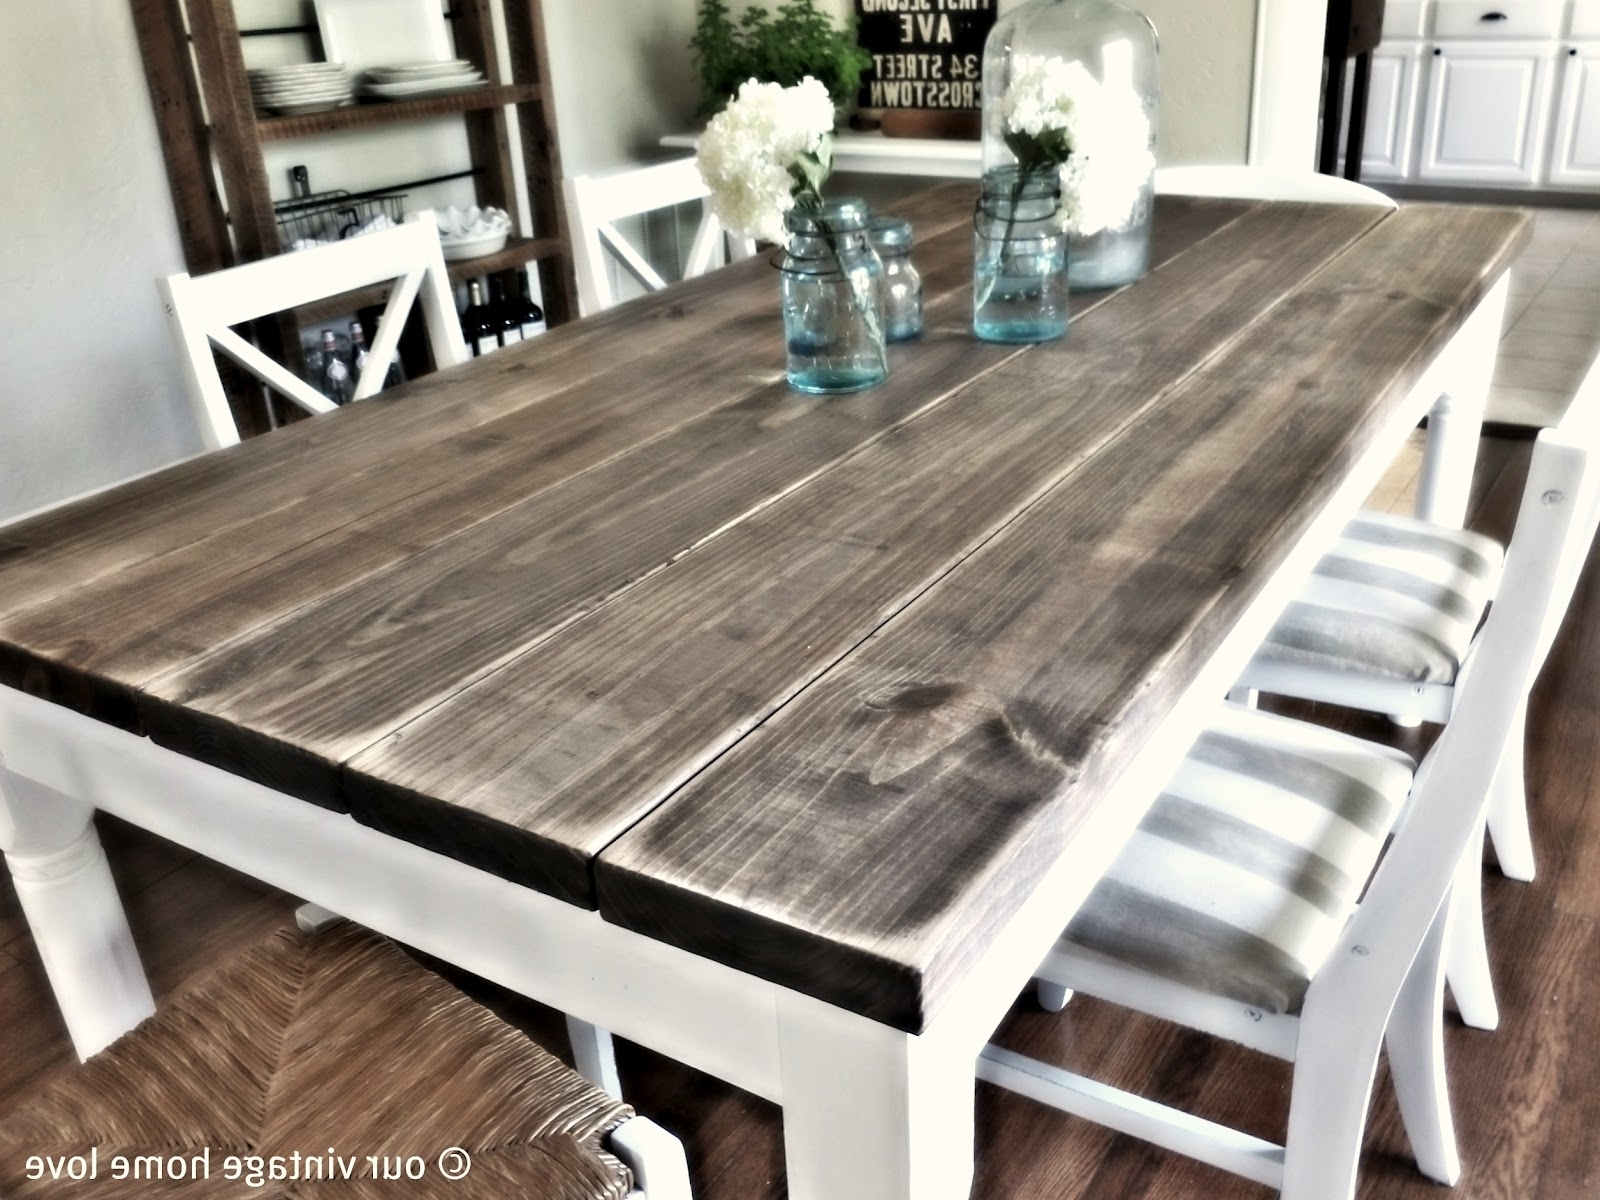 Popular Vintage Home Love: Dining Room Table Tutorial Intended For Dining Room Tables (Gallery 4 of 25)